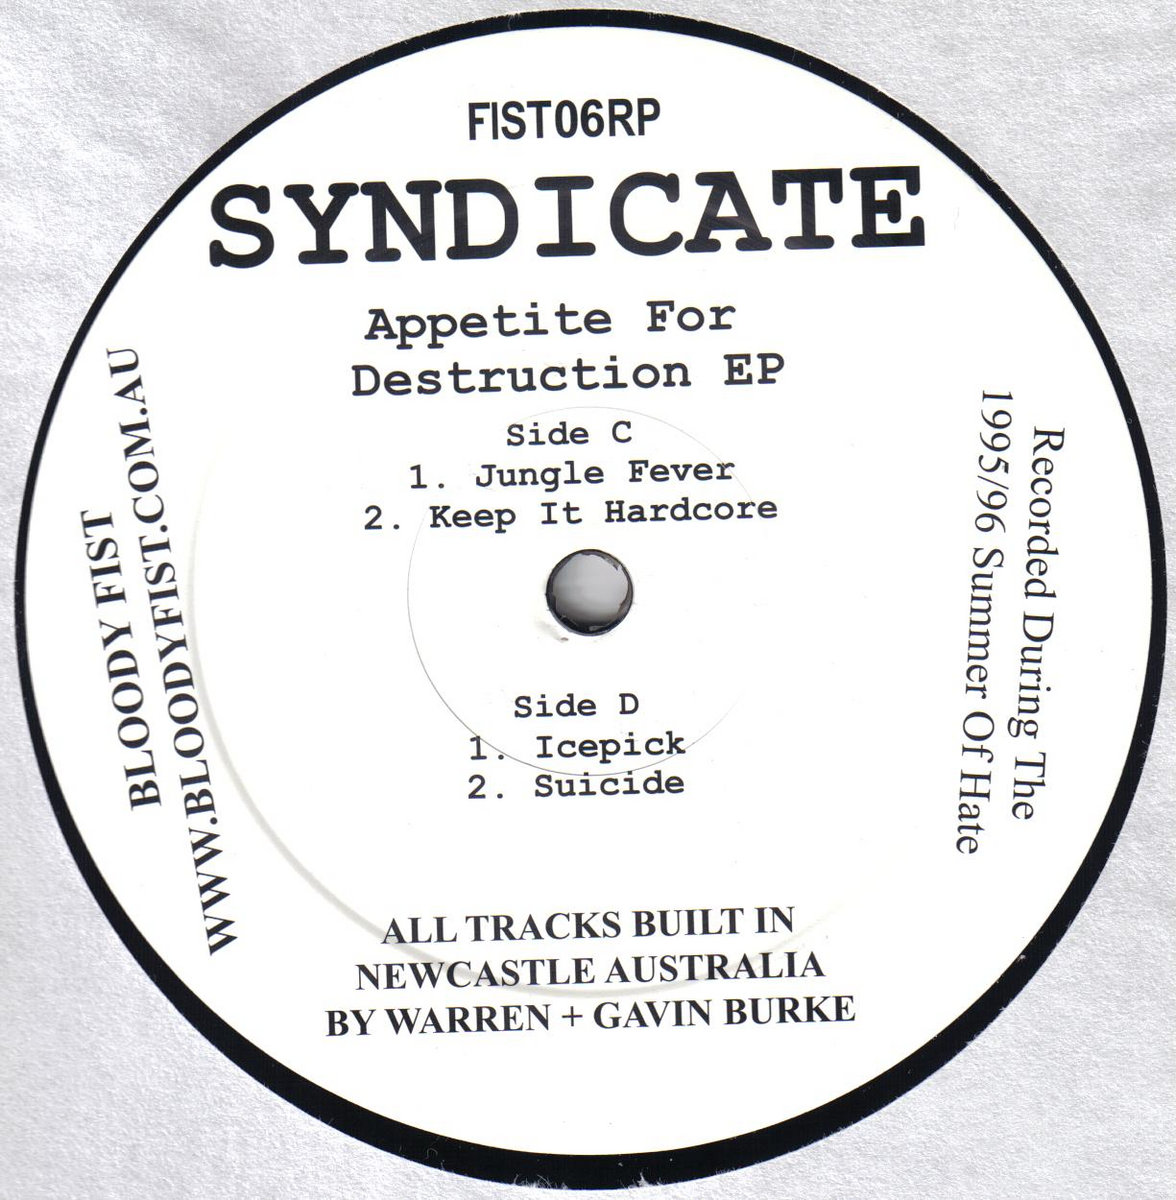 Killer repress of a Bloody Fist classic. The original 1996 DAT masters have  been captured, fattened and spread over 3 x 12